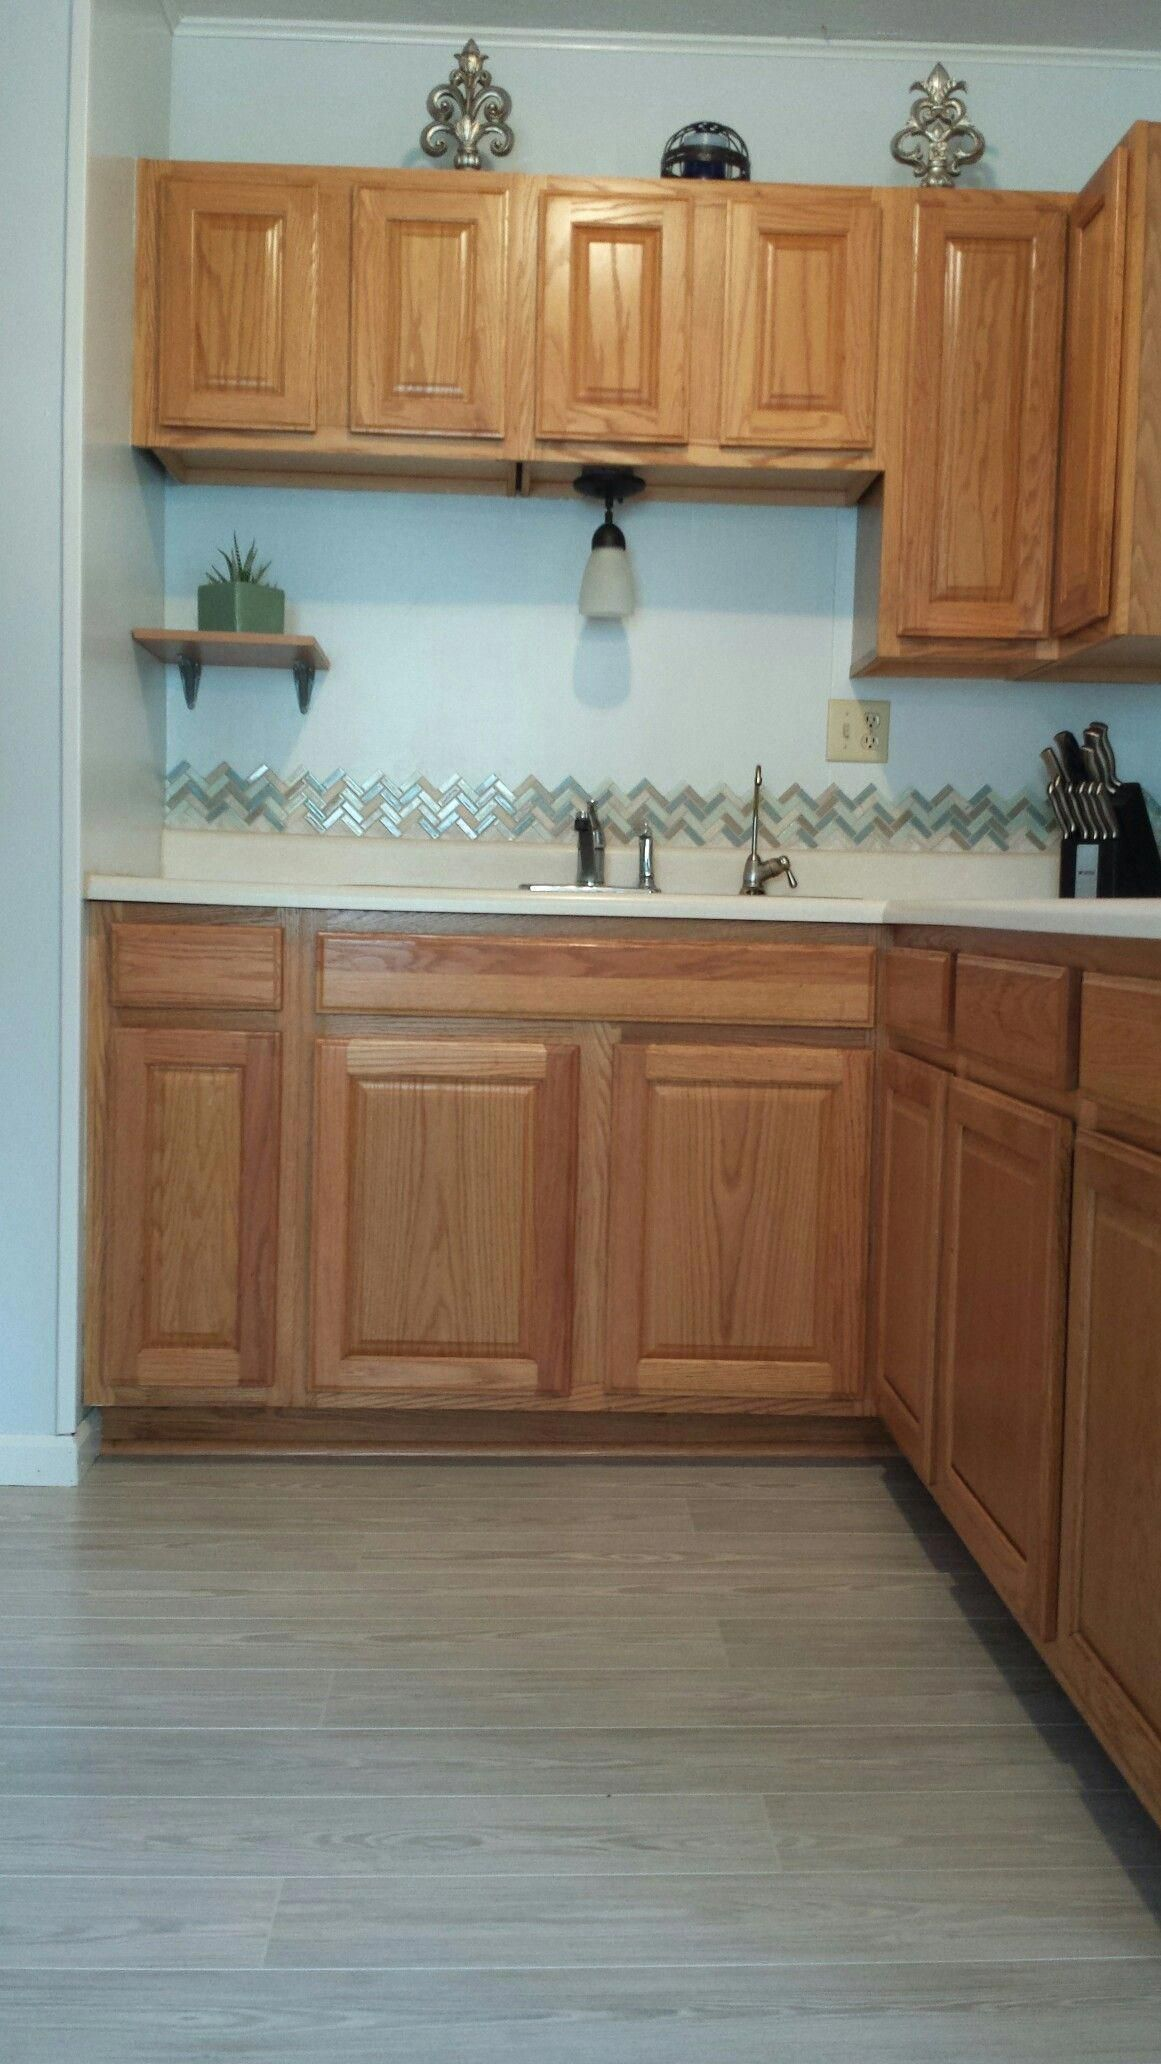 Portray kitchen cupboards a master electrician gives easy methods